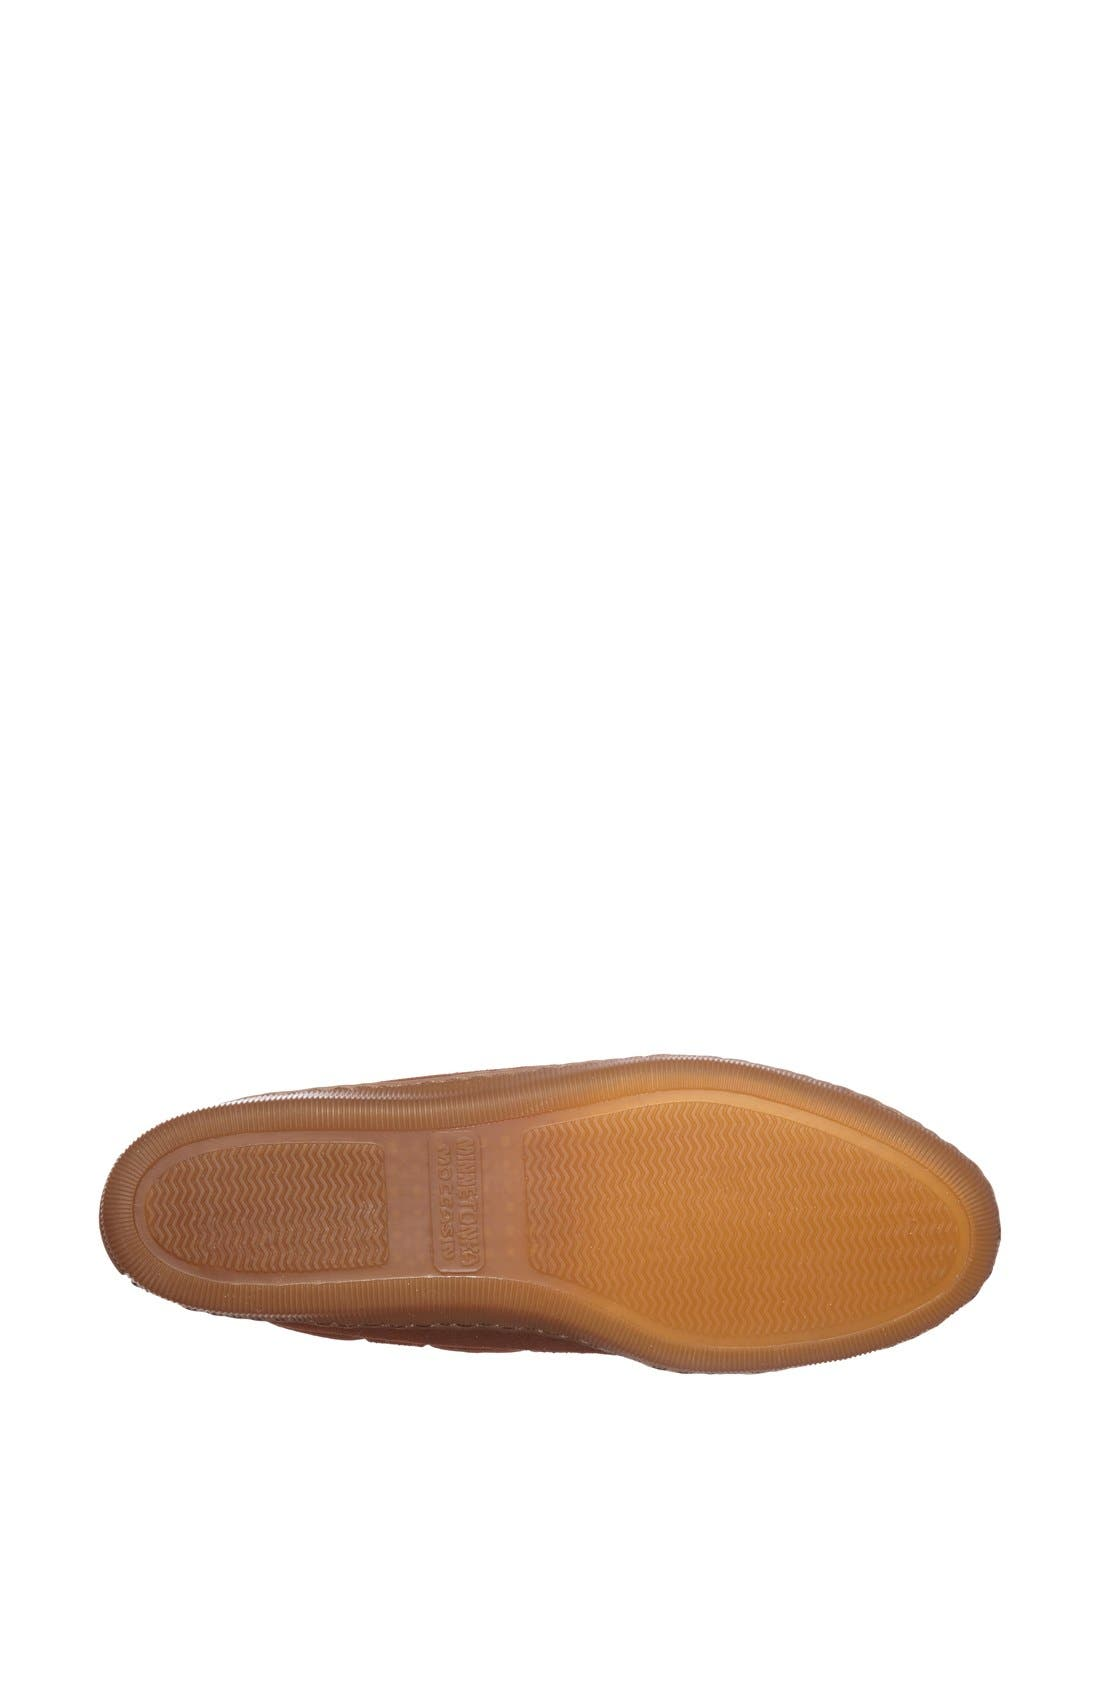 Moccasin Slipper,                             Alternate thumbnail 2, color,                             BROWN